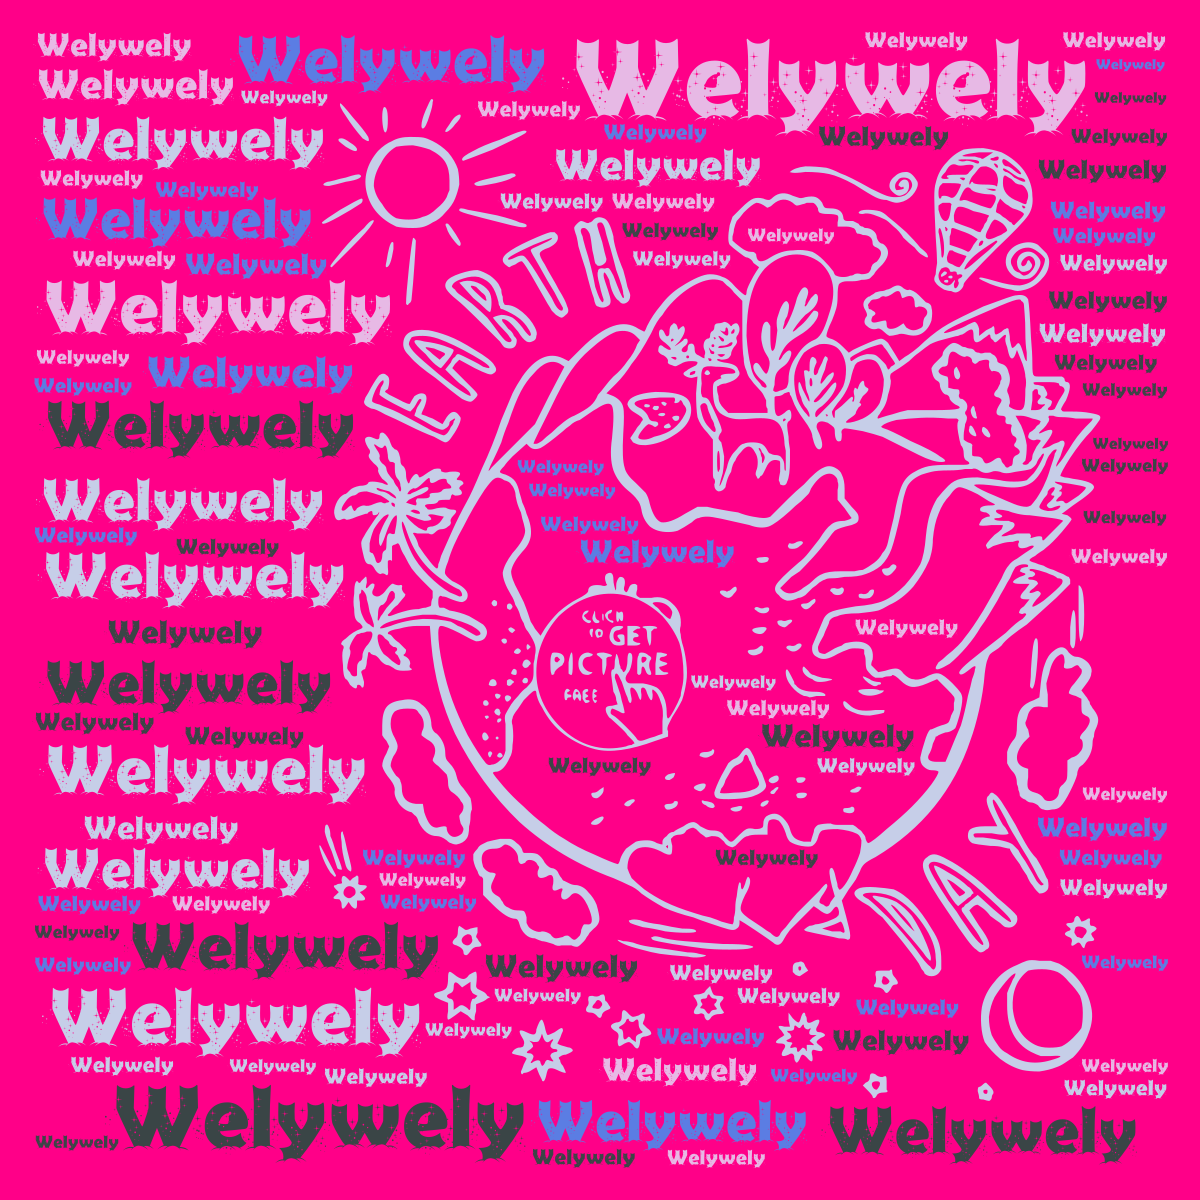 Welywely